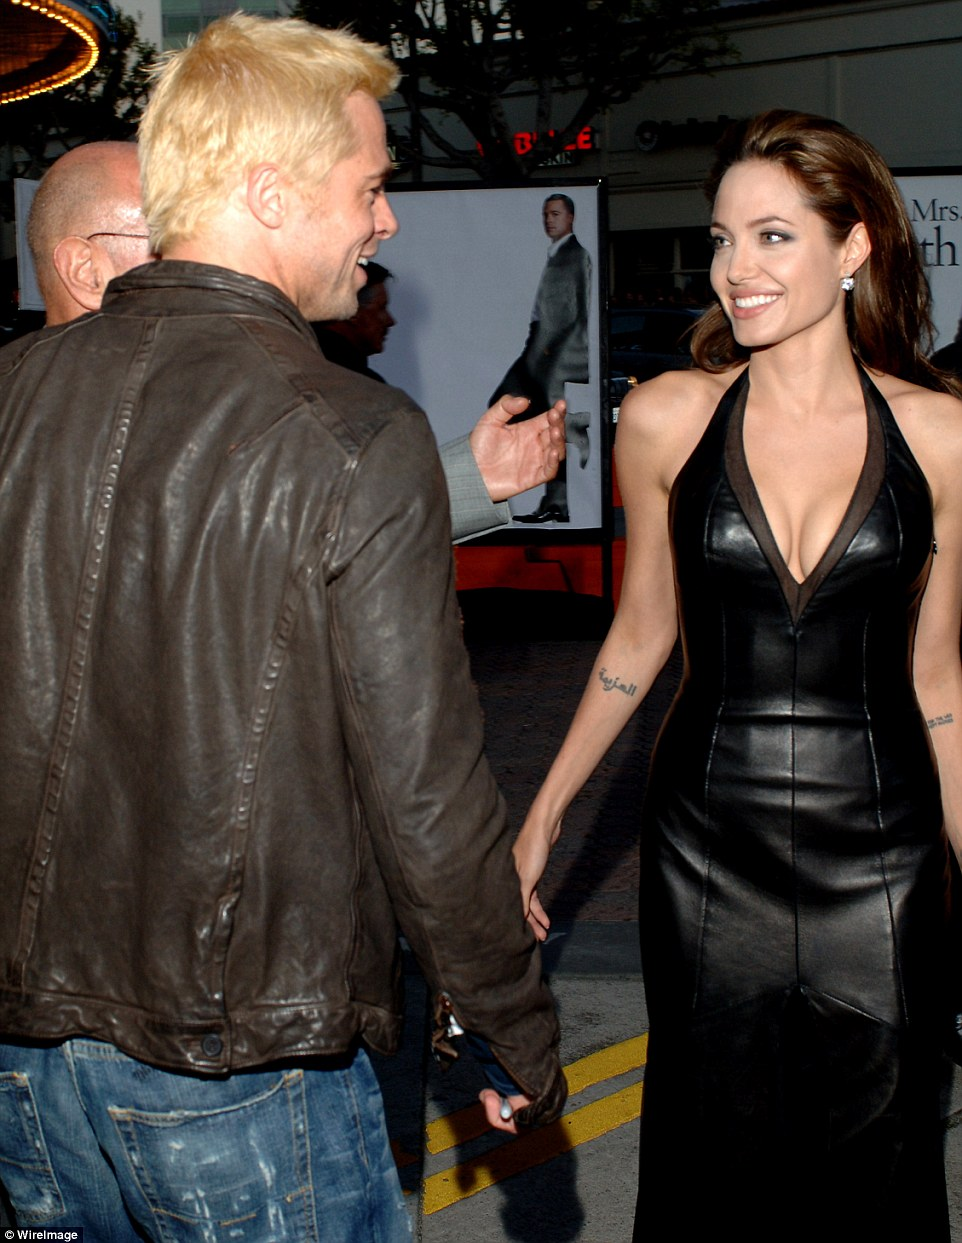 No longer hiding their romance: The pair's relationship was confirmed in April 2005, two months before Mr. & Mrs. Smith hit cinemas